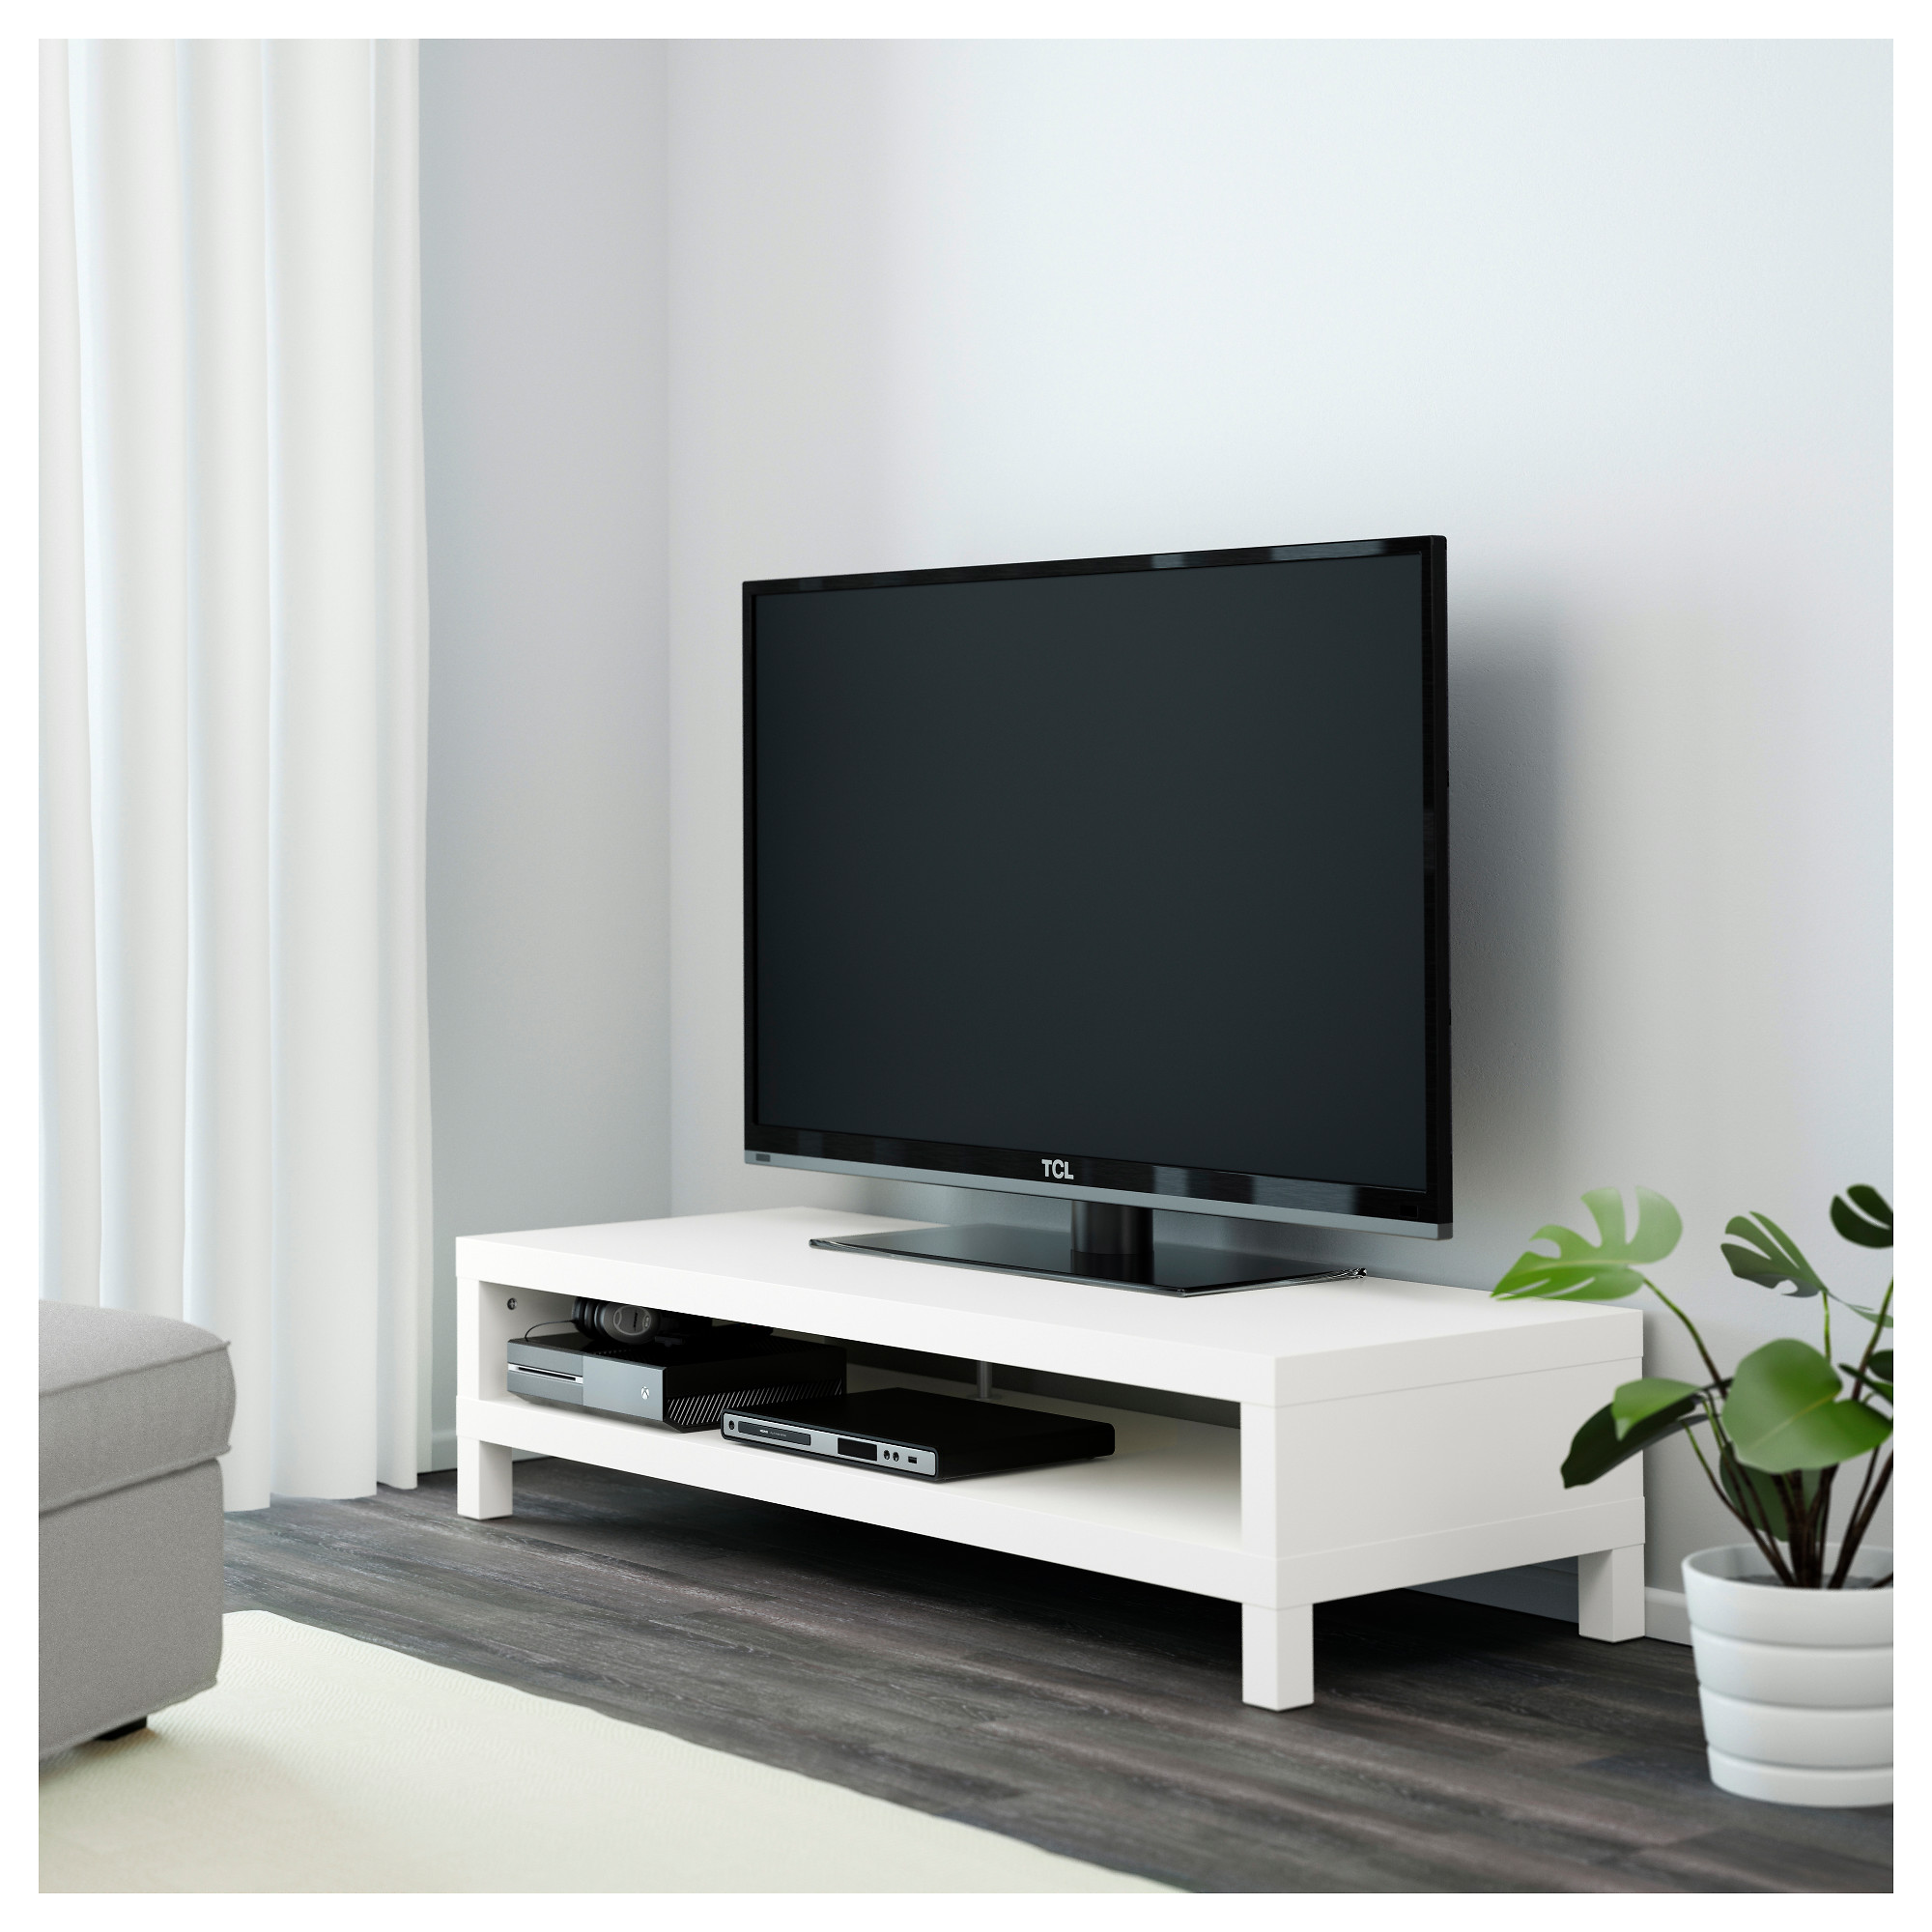 Meuble Bas Tele Ikea Fashion Designs # Meuble Hifi Tv Roulette Ikea Ps